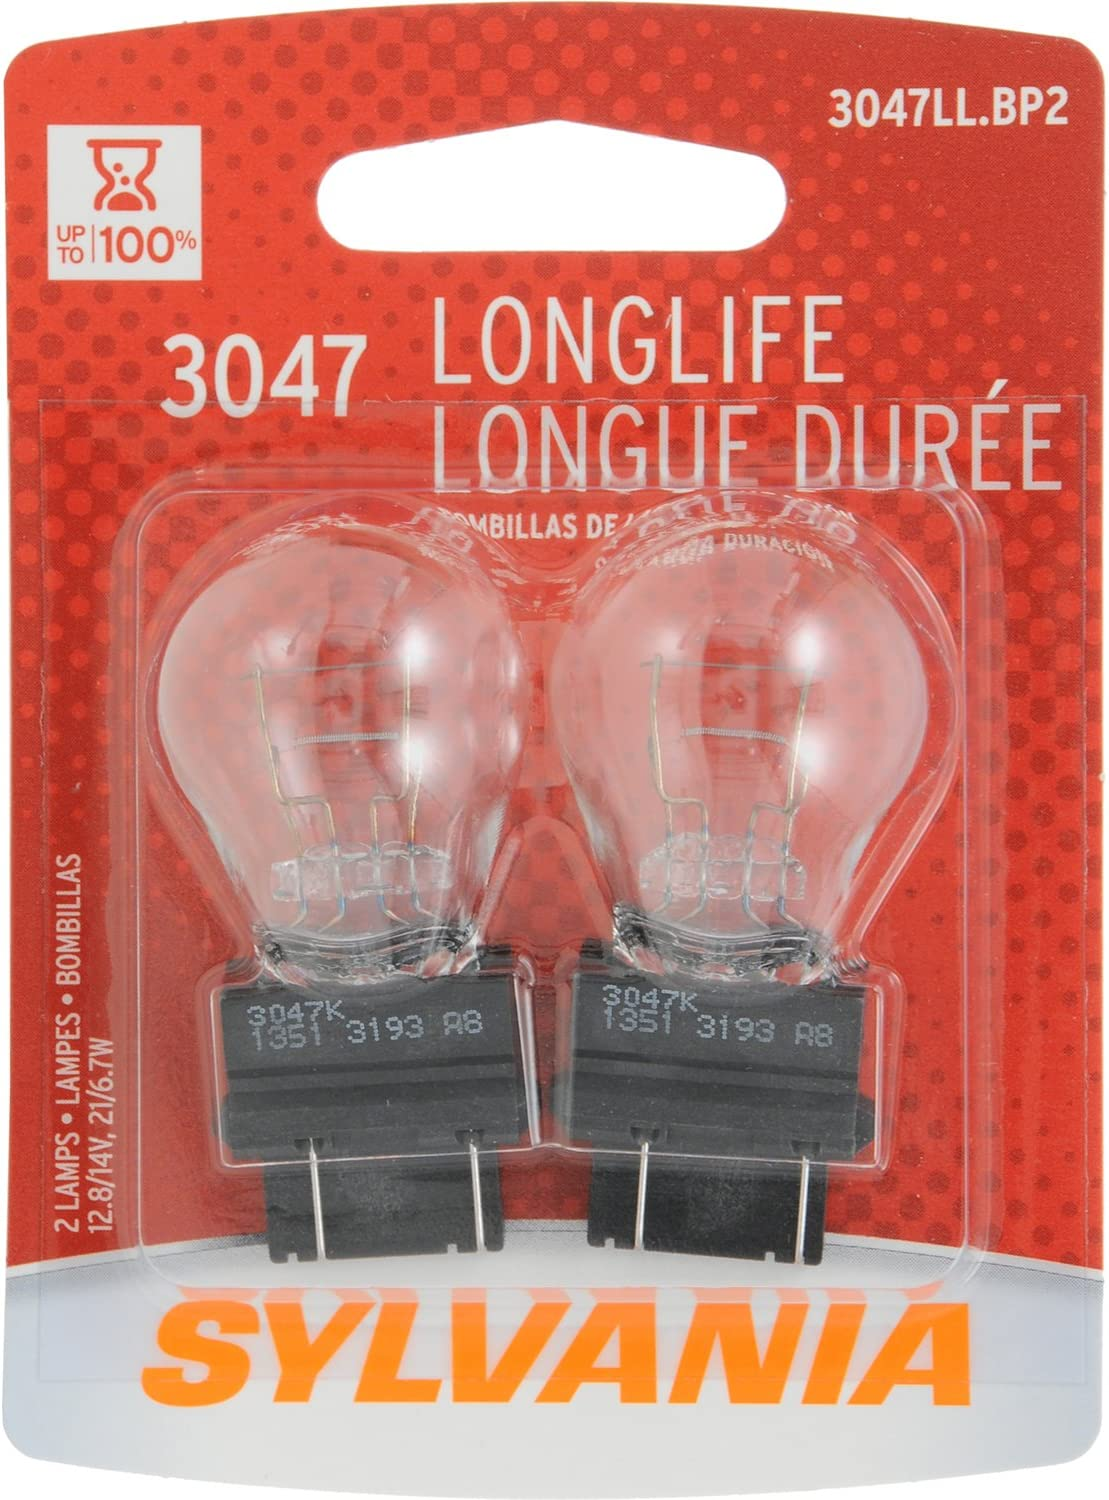 Contains 2 Bulbs SYLVANIA 1157 Long Life Miniature Bulb,